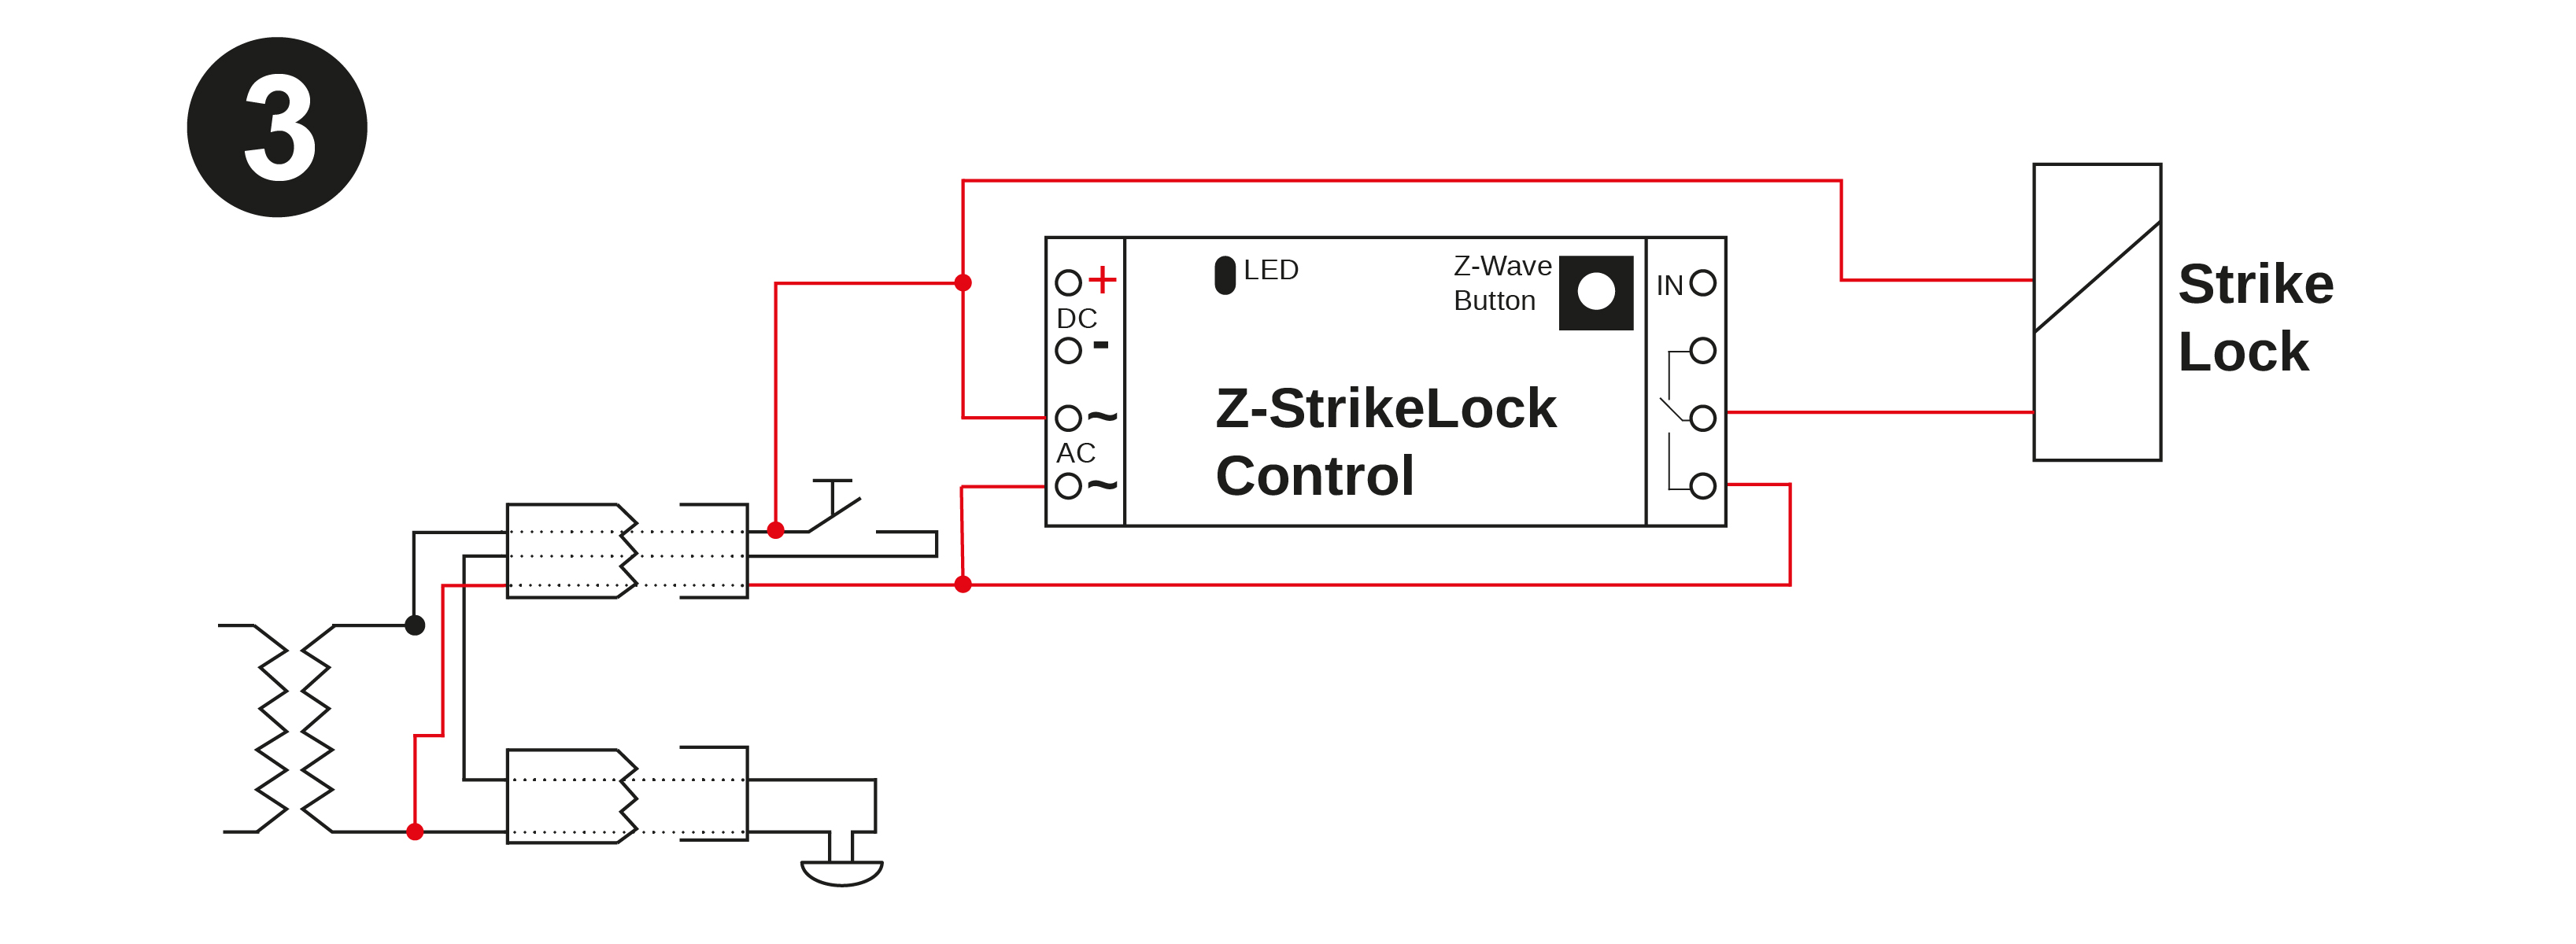 The image below shows how to change this existng cabling to power the  strike lock in parallel.